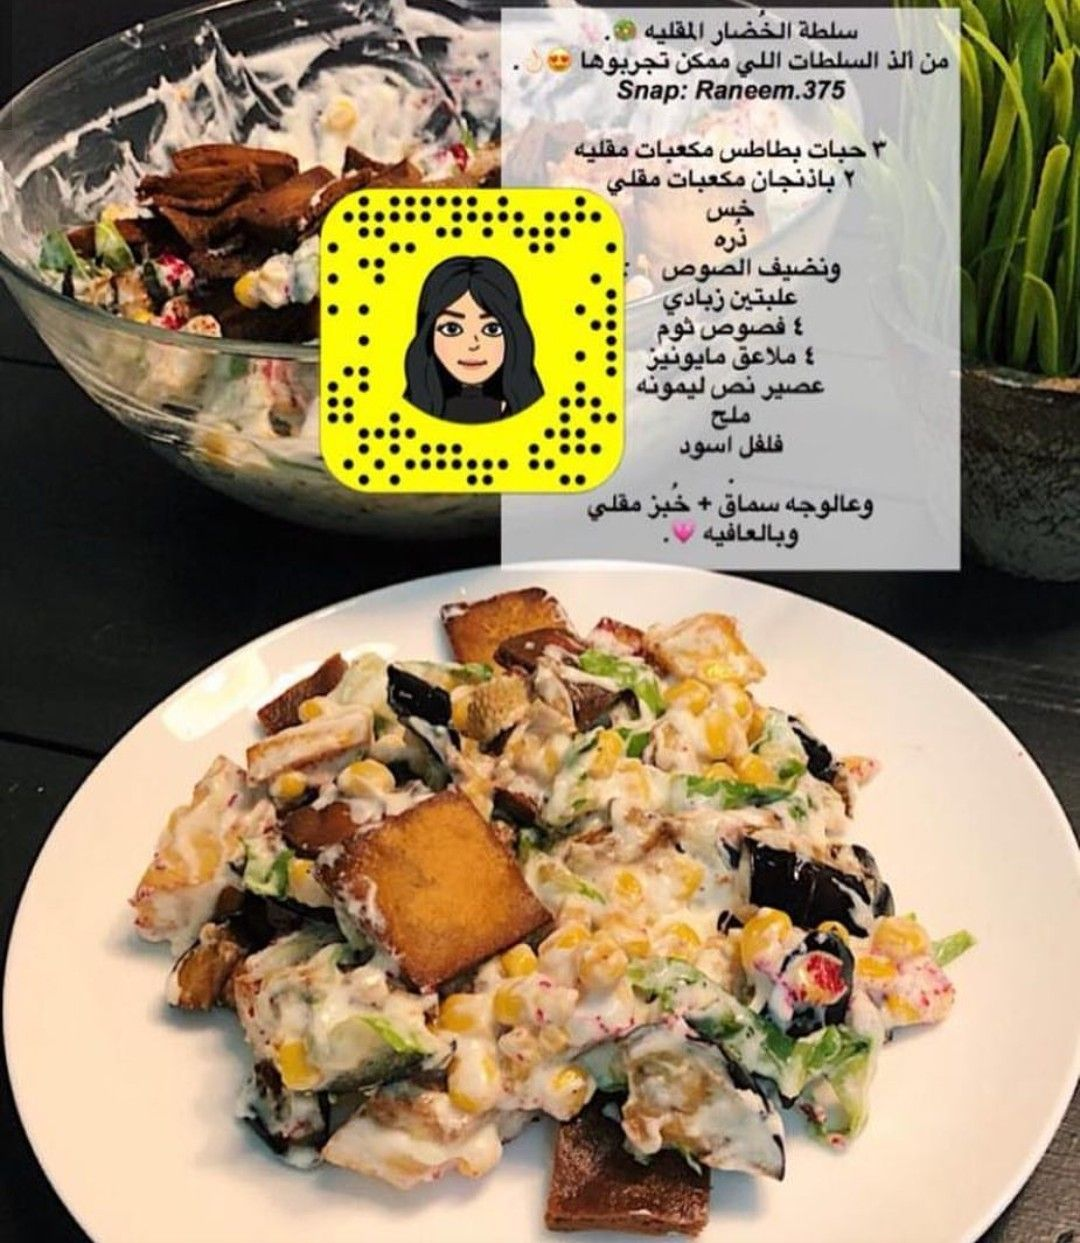 Pin By Gege Amri On سلطات ومقبلات Cookout Food Food Dishes Cooking Recipes